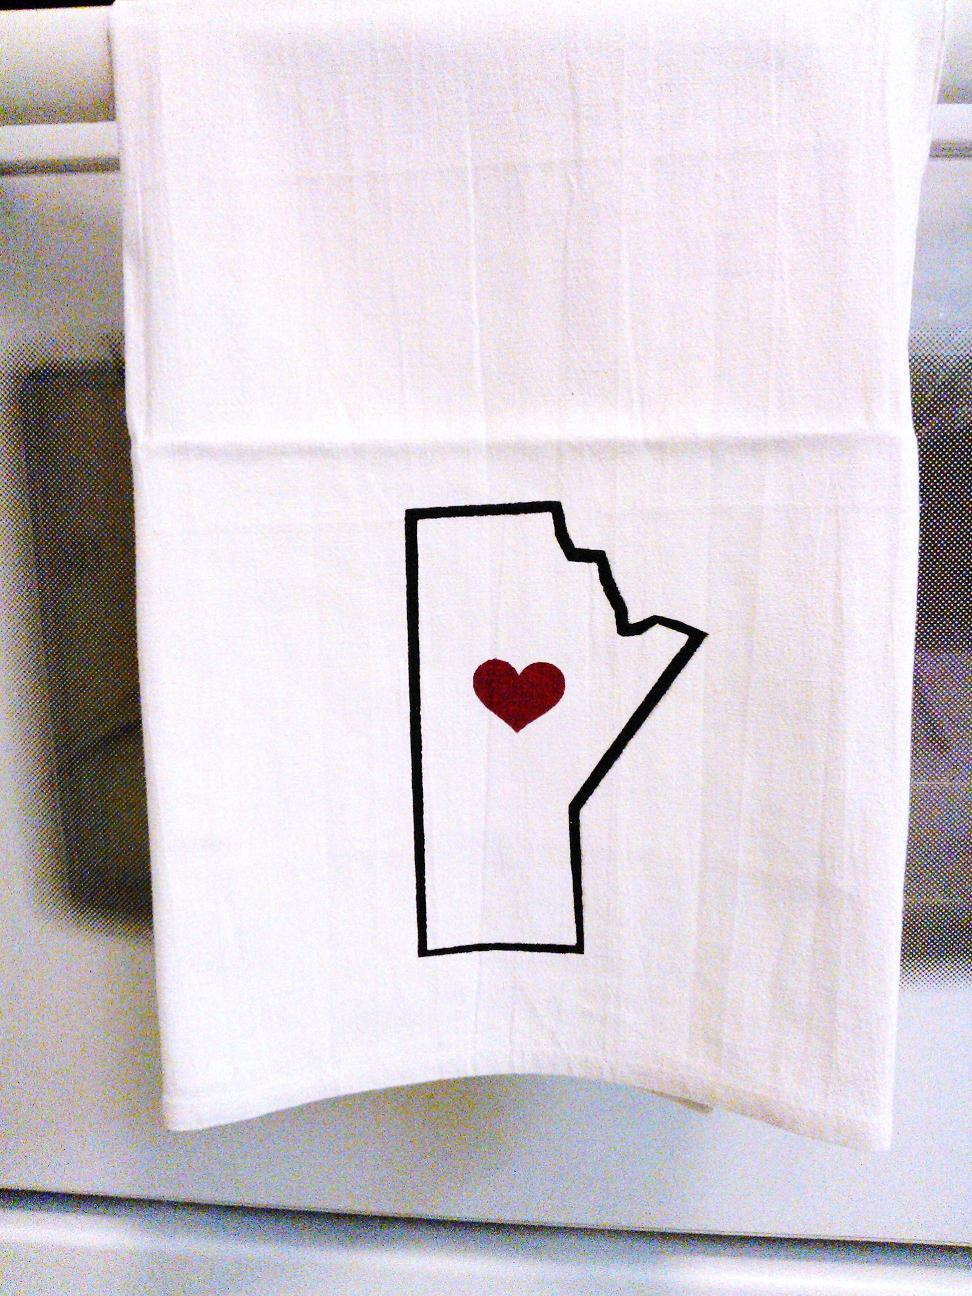 Silk screened Manitoba themed dish towels!